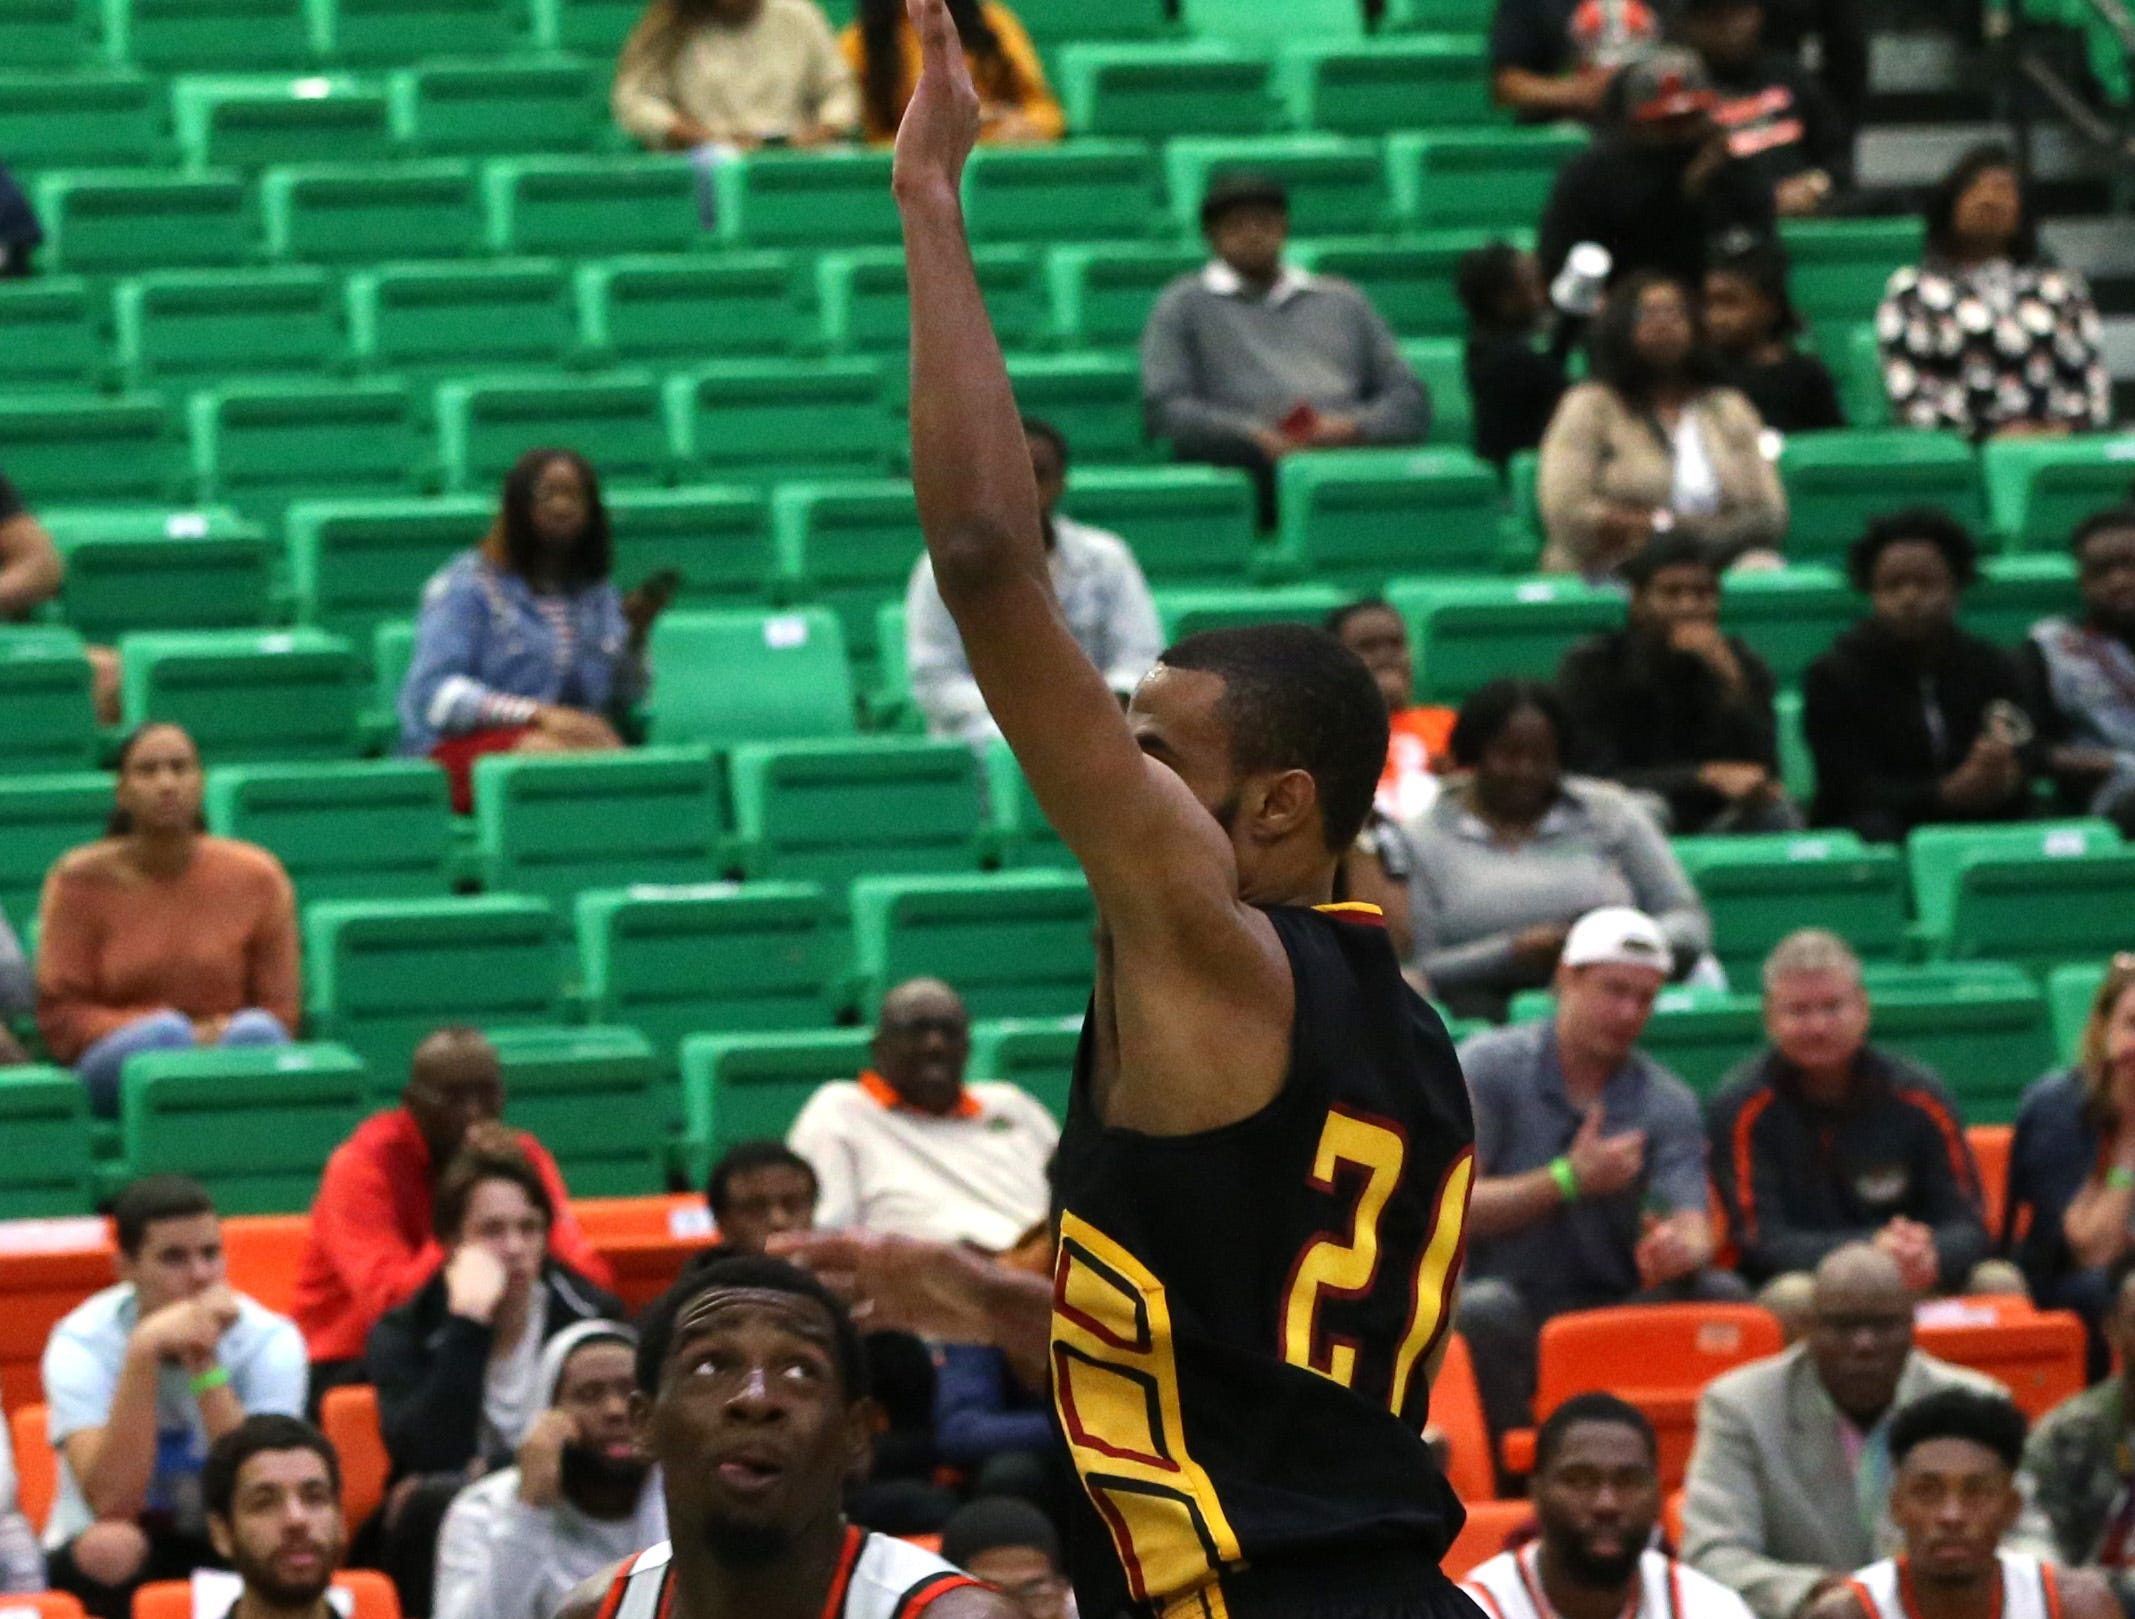 Florida A&M Rattlers forward Tracy Hector Jr. (0) attempts to shoot as the FAMU Rattlers take on the Tuskegee Golden Tigers in their first home game of the season in the Lawson Center, Saturday, Nov. 10, 2018.